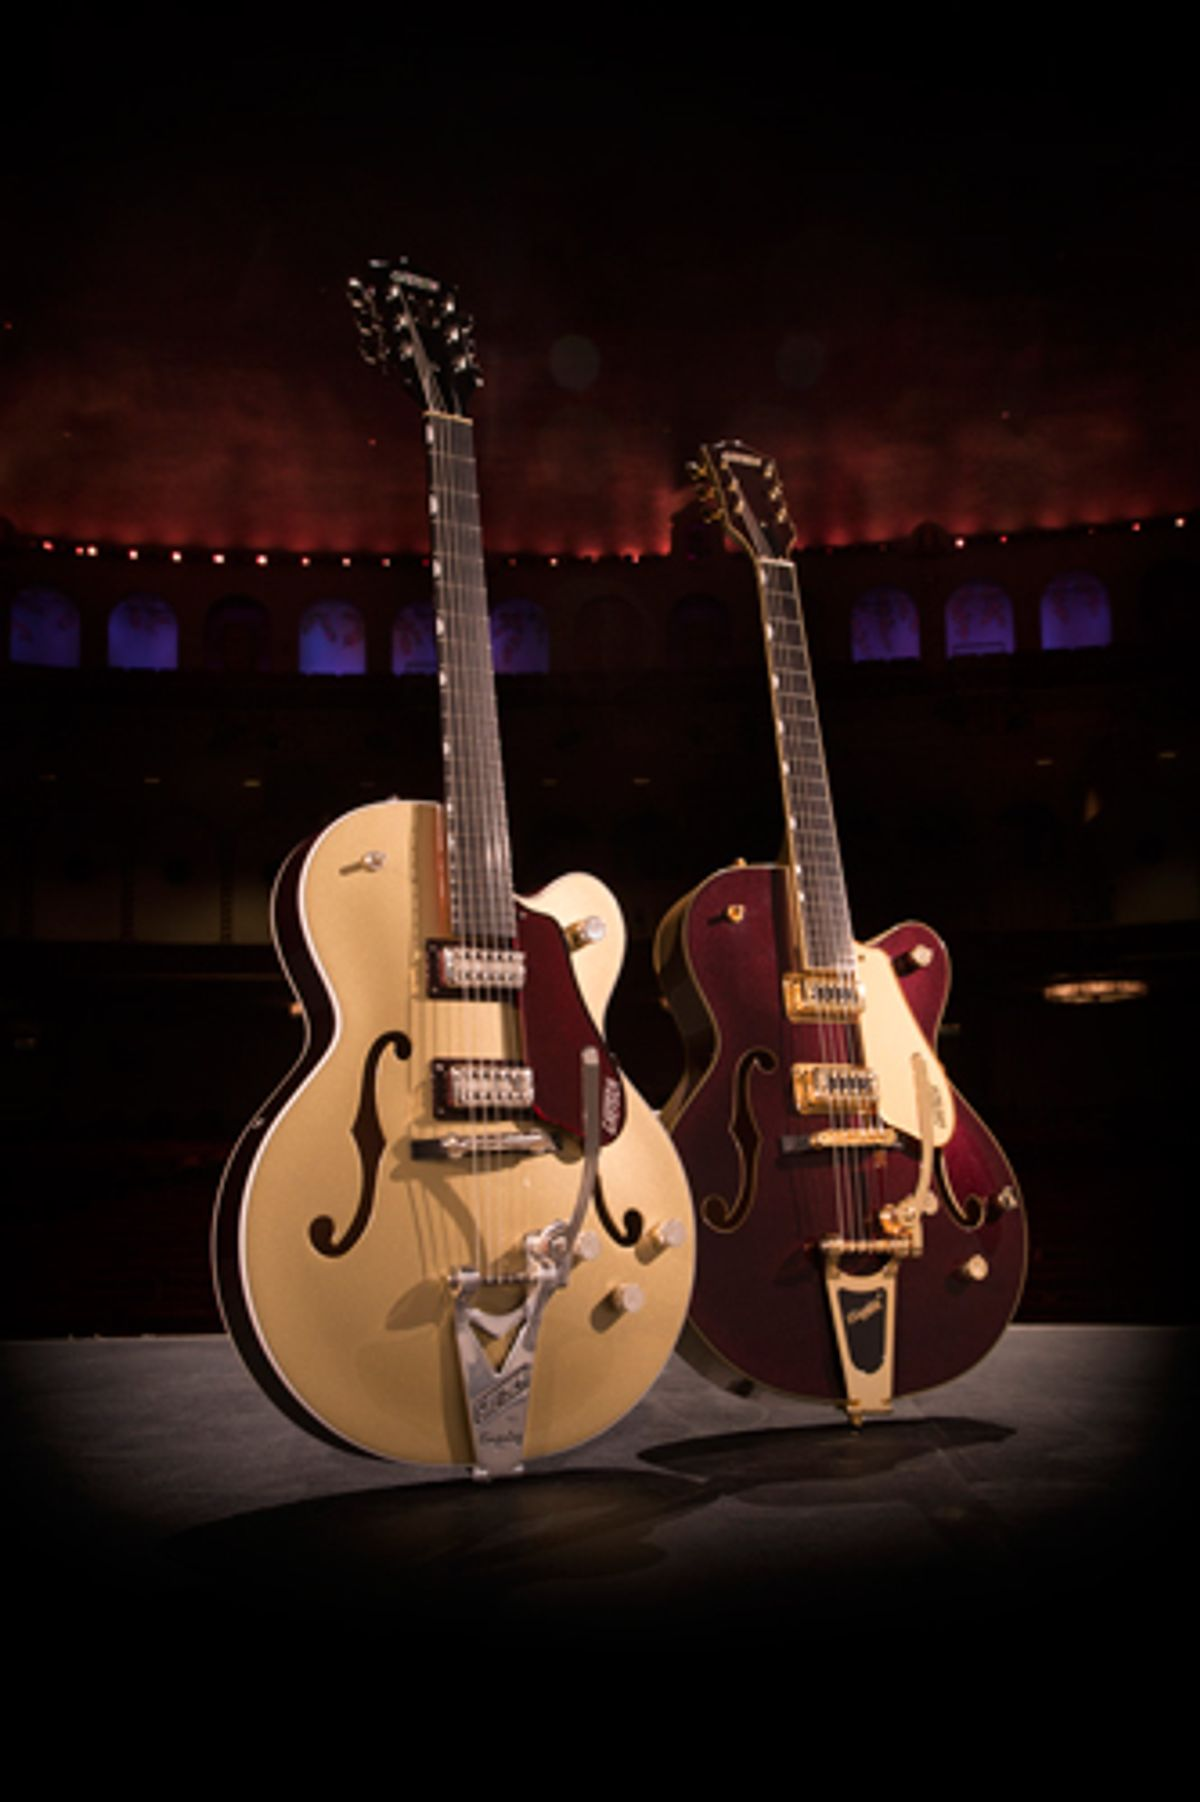 Gretsch Celebrates 135th Anniversary with Two New Limited-Edition Models